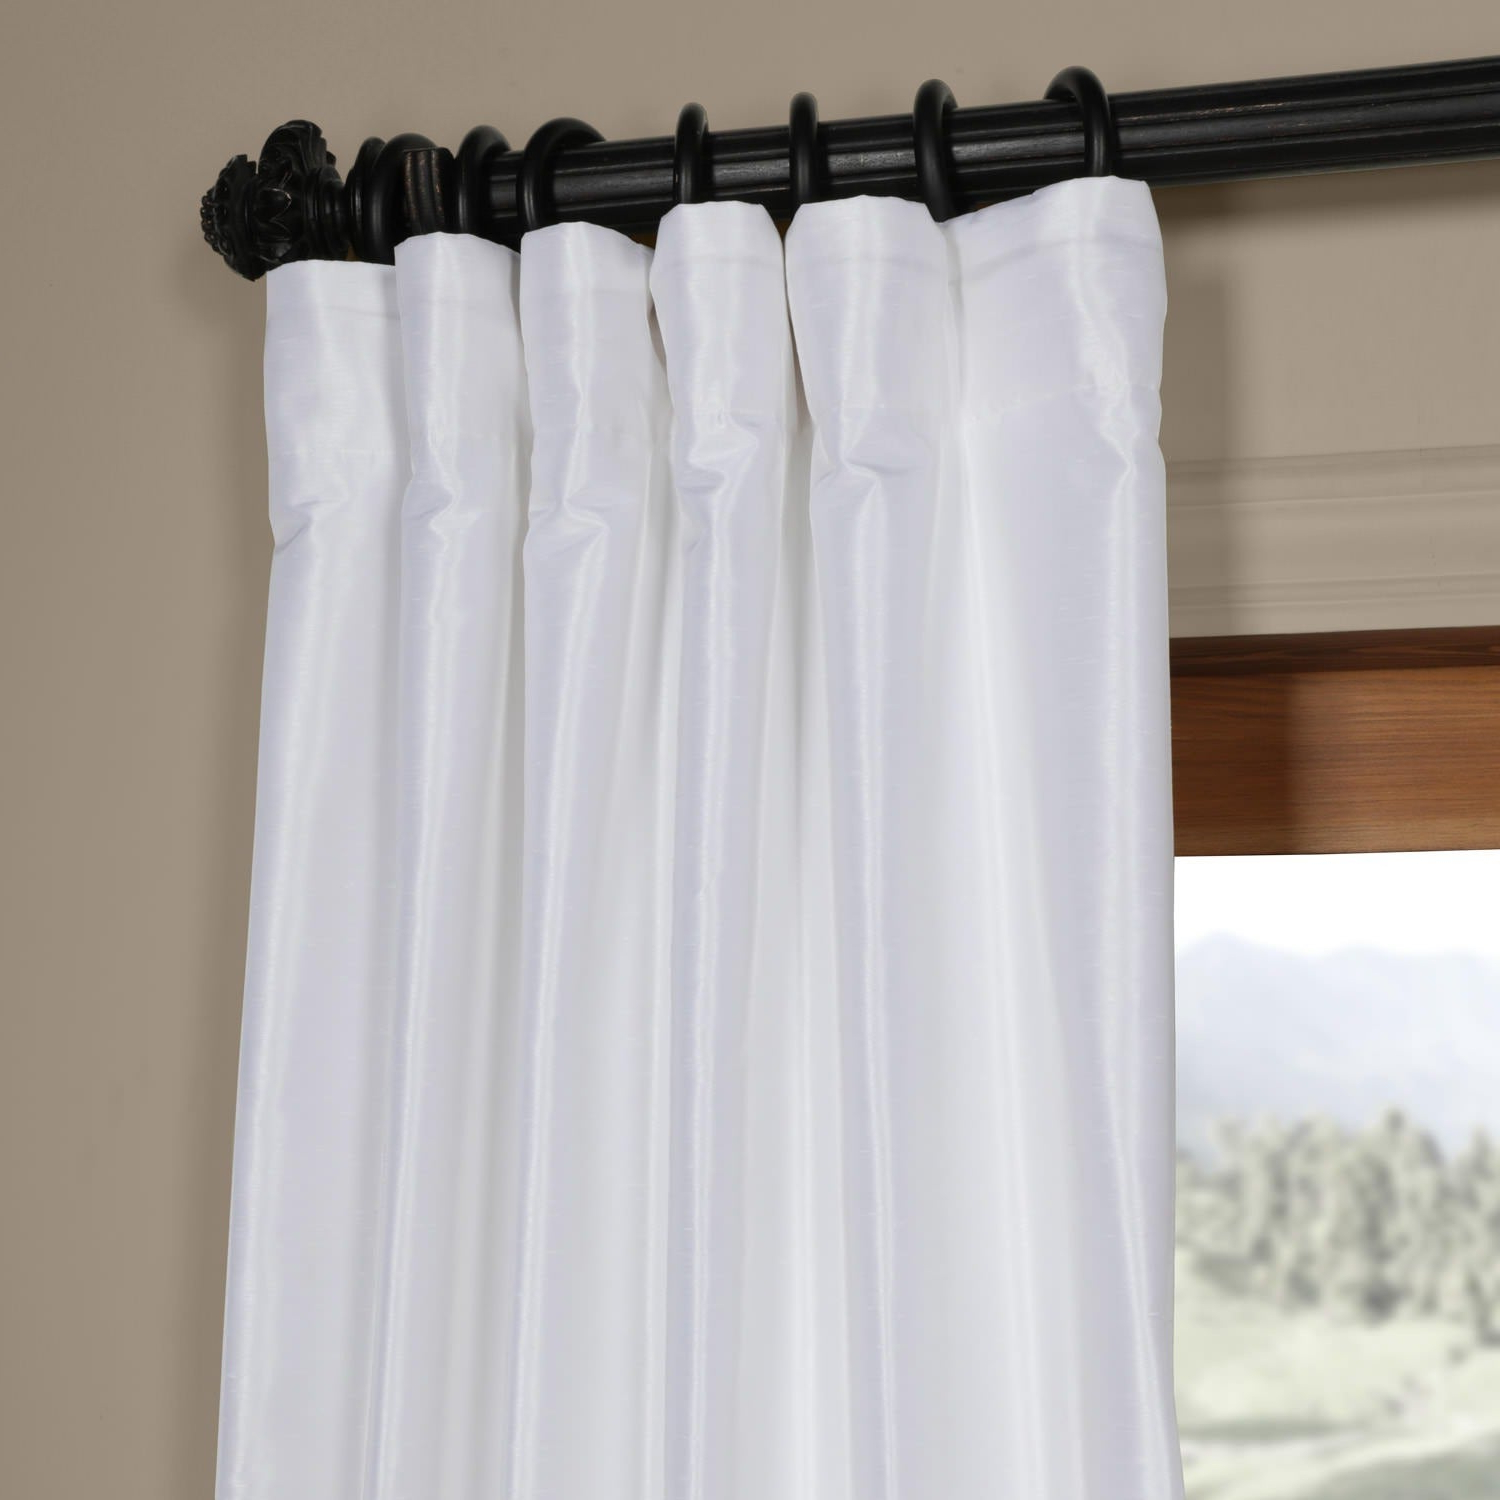 Best And Newest Ice White Vintage Faux Textured Dupioni Silk 108L Curtain Panel With Ice White Vintage Faux Textured Silk Curtain Panels (View 2 of 20)